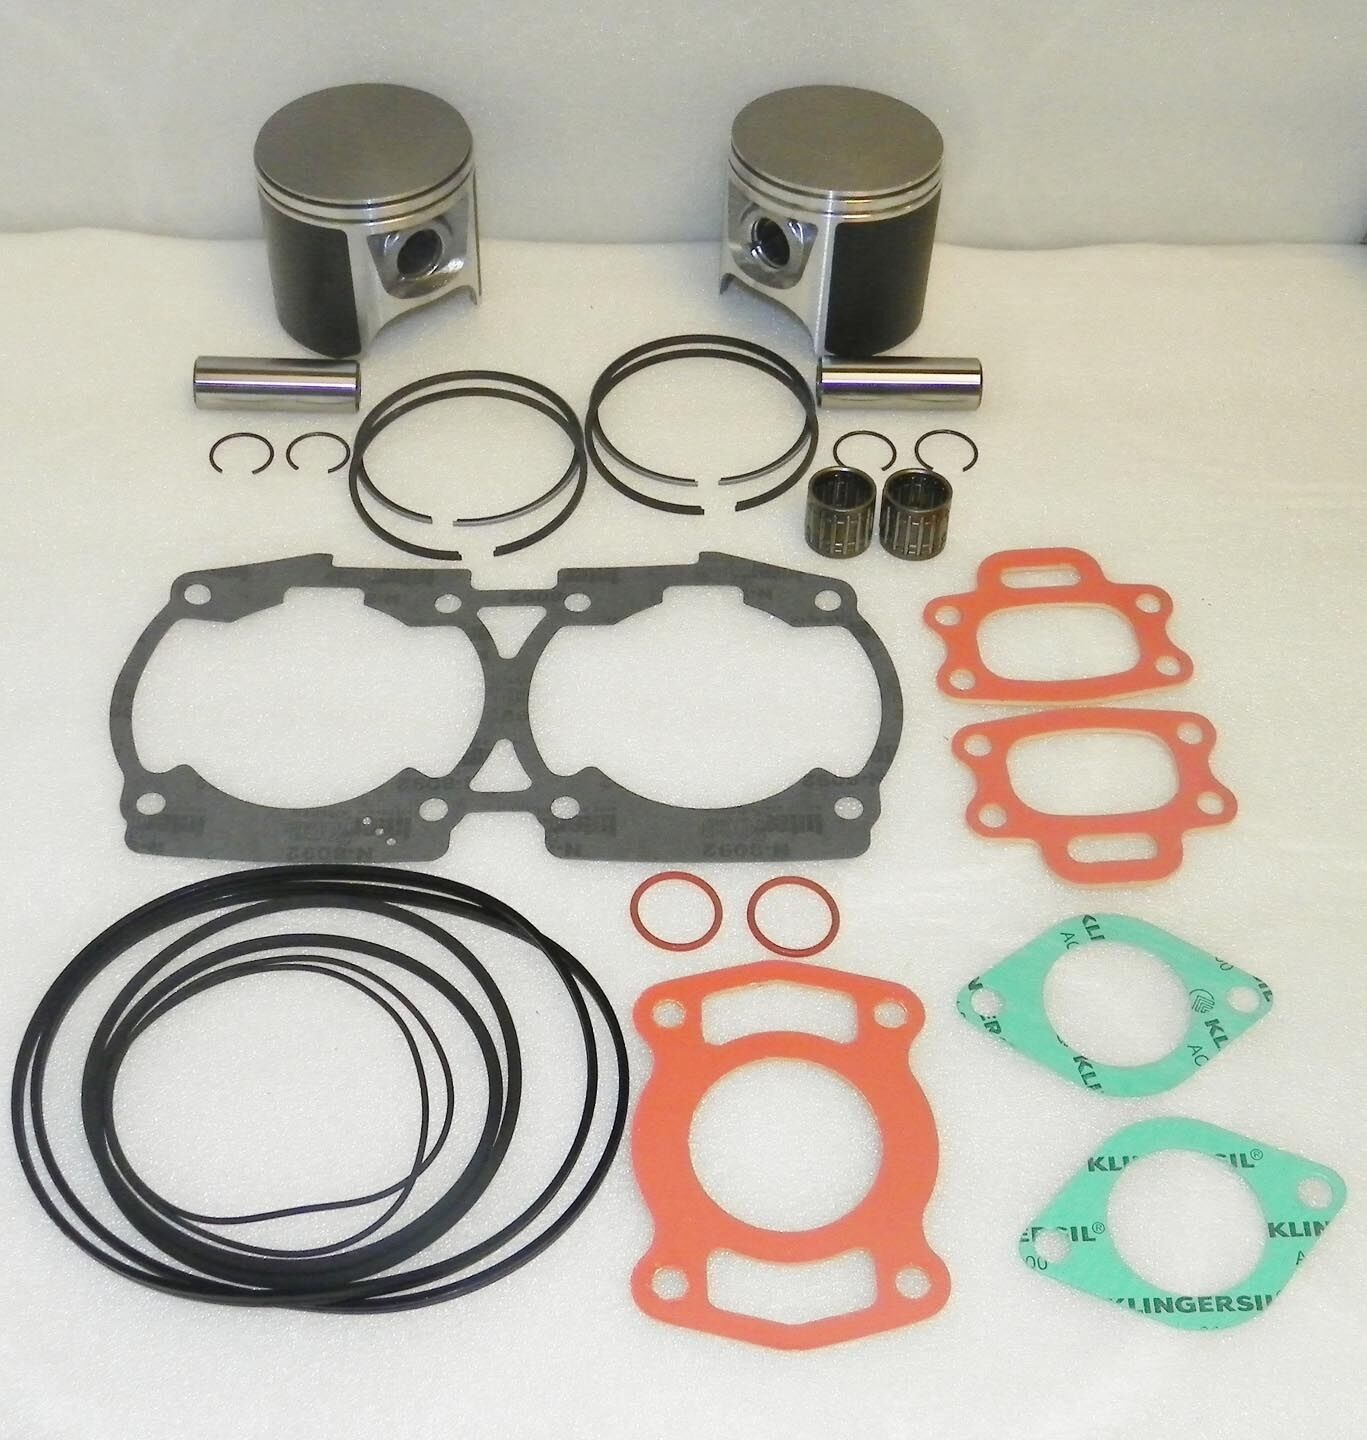 Top End Rebuild Set .75 Custom 717/720 Gti Gs GTS Hx Wsm Platinum 010-817-13P